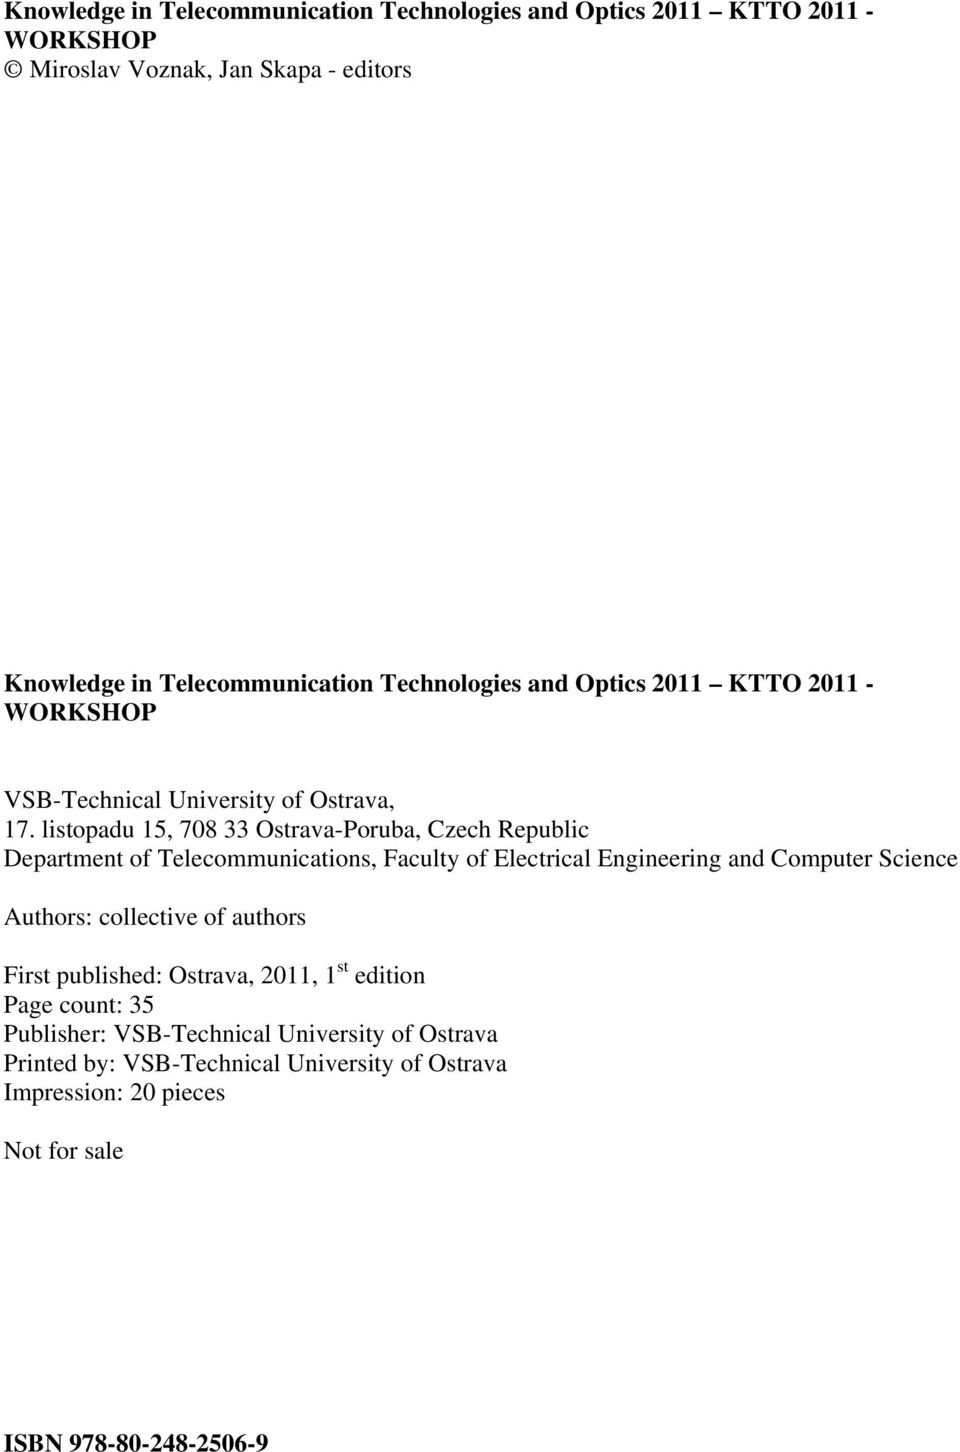 listopadu 15, 708 33 Ostrava-Poruba, Czech Republic Department of Telecommunications, Faculty of Electrical Engineering and Computer Science Authors: